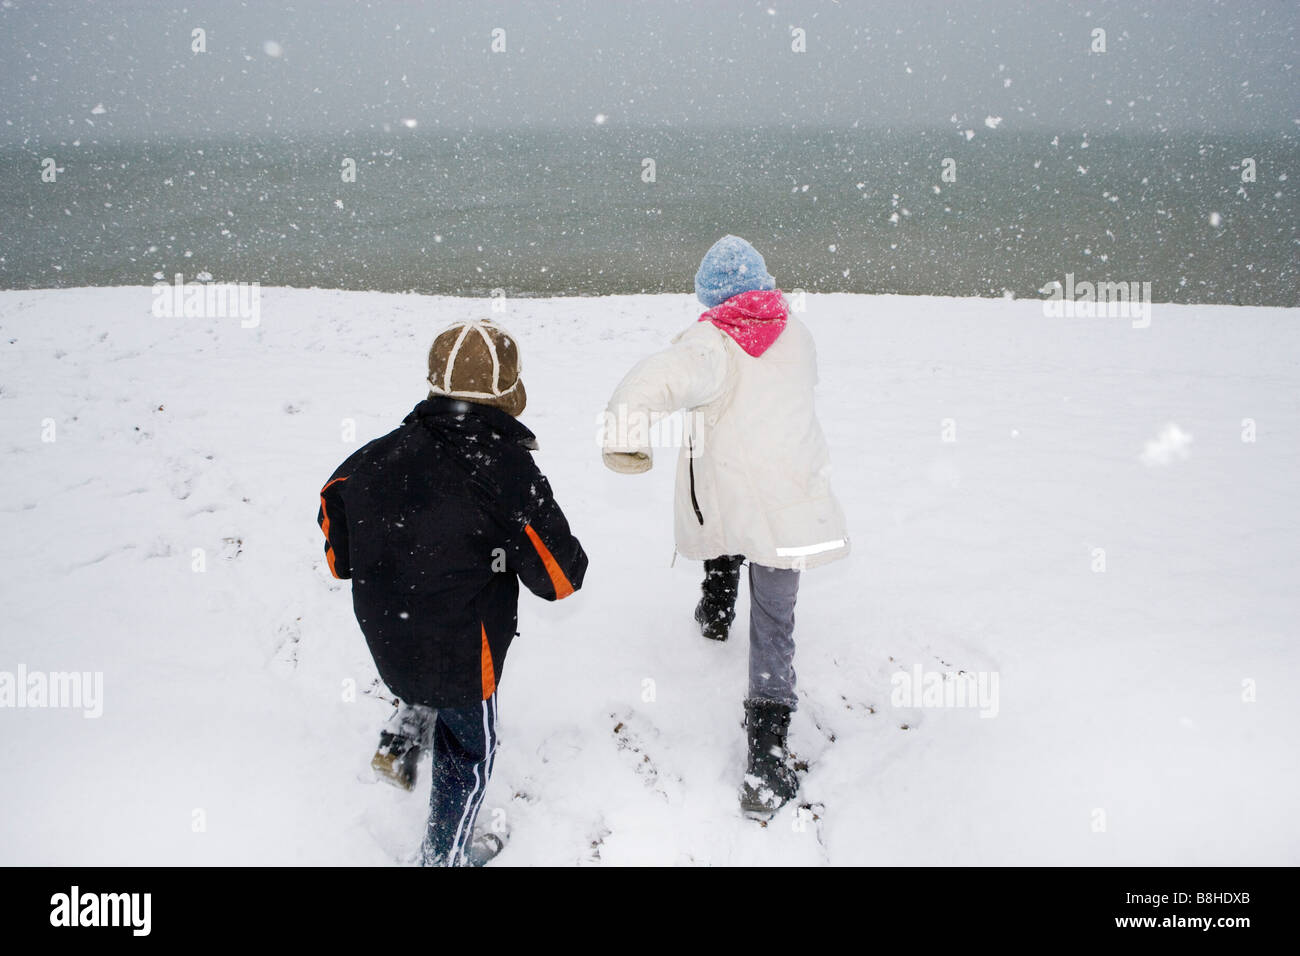 Children running on a snowy beach - Stock Image